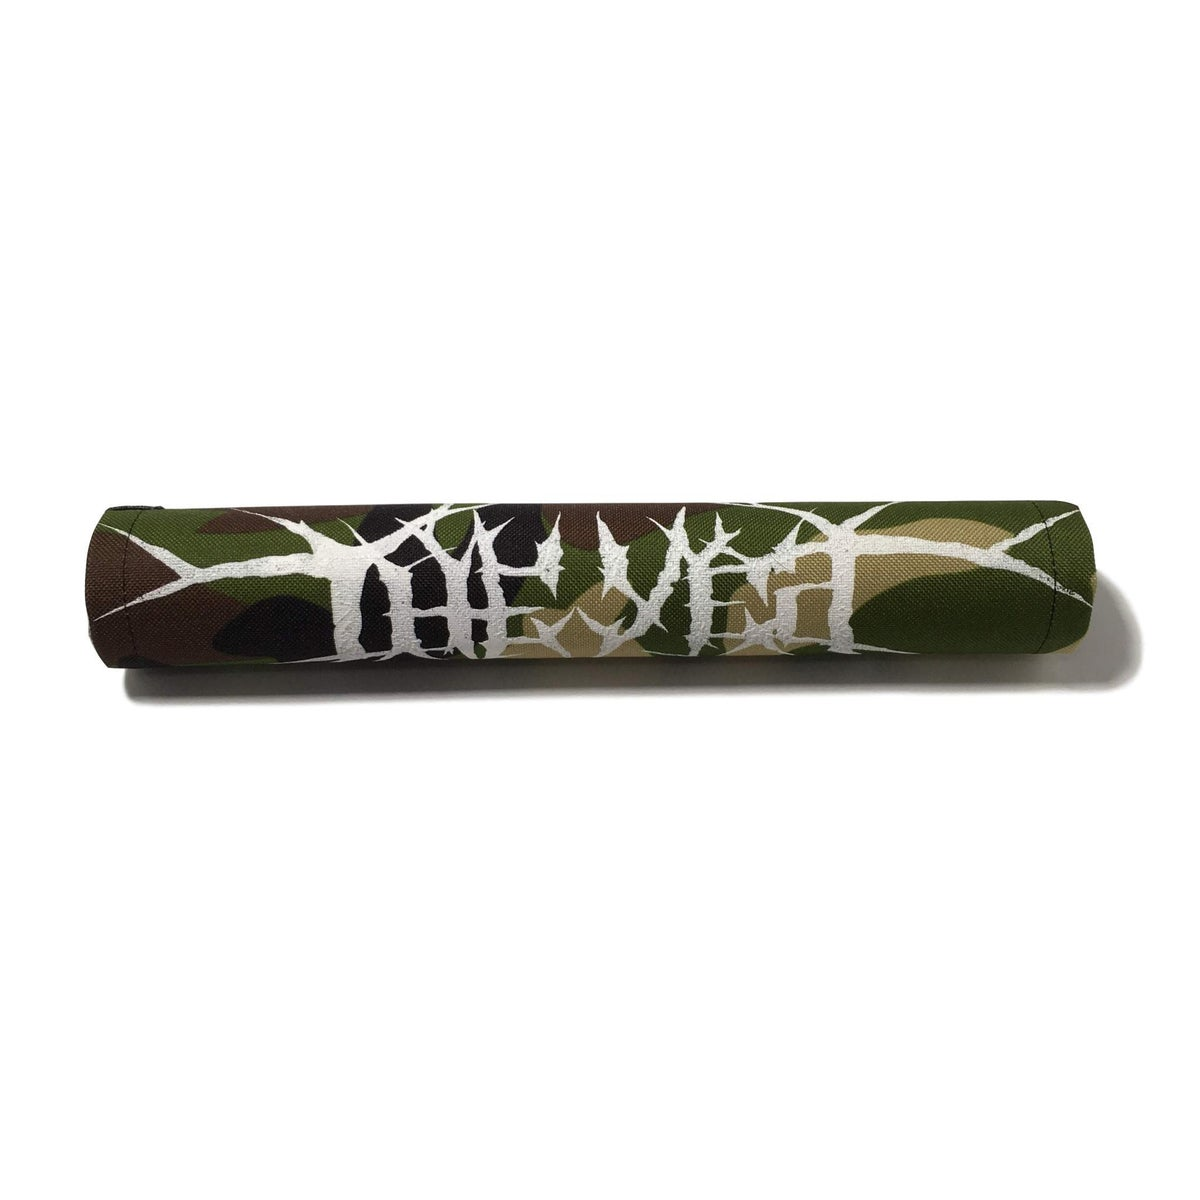 Image of Metal Crossbar Pad - Camo